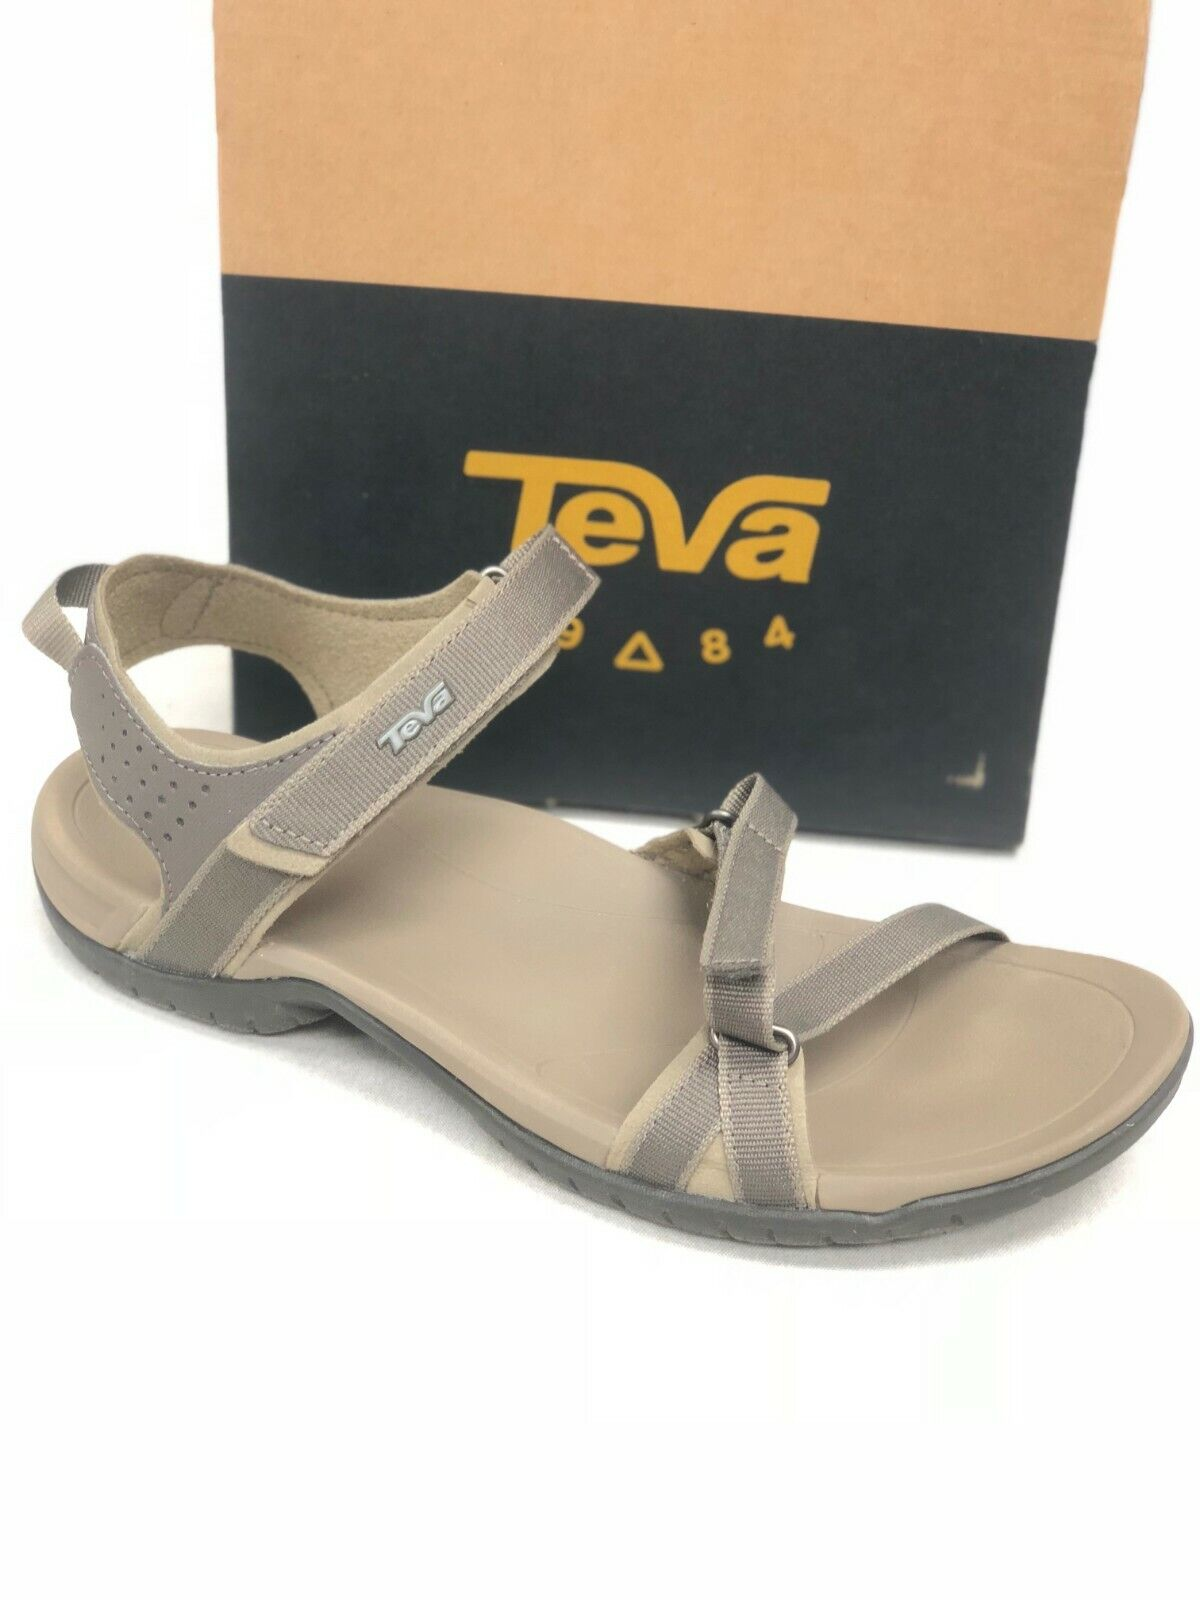 Teva Women's Verra Sandals Bungee Cord Tan Hiking Sport 1006263 Strappy